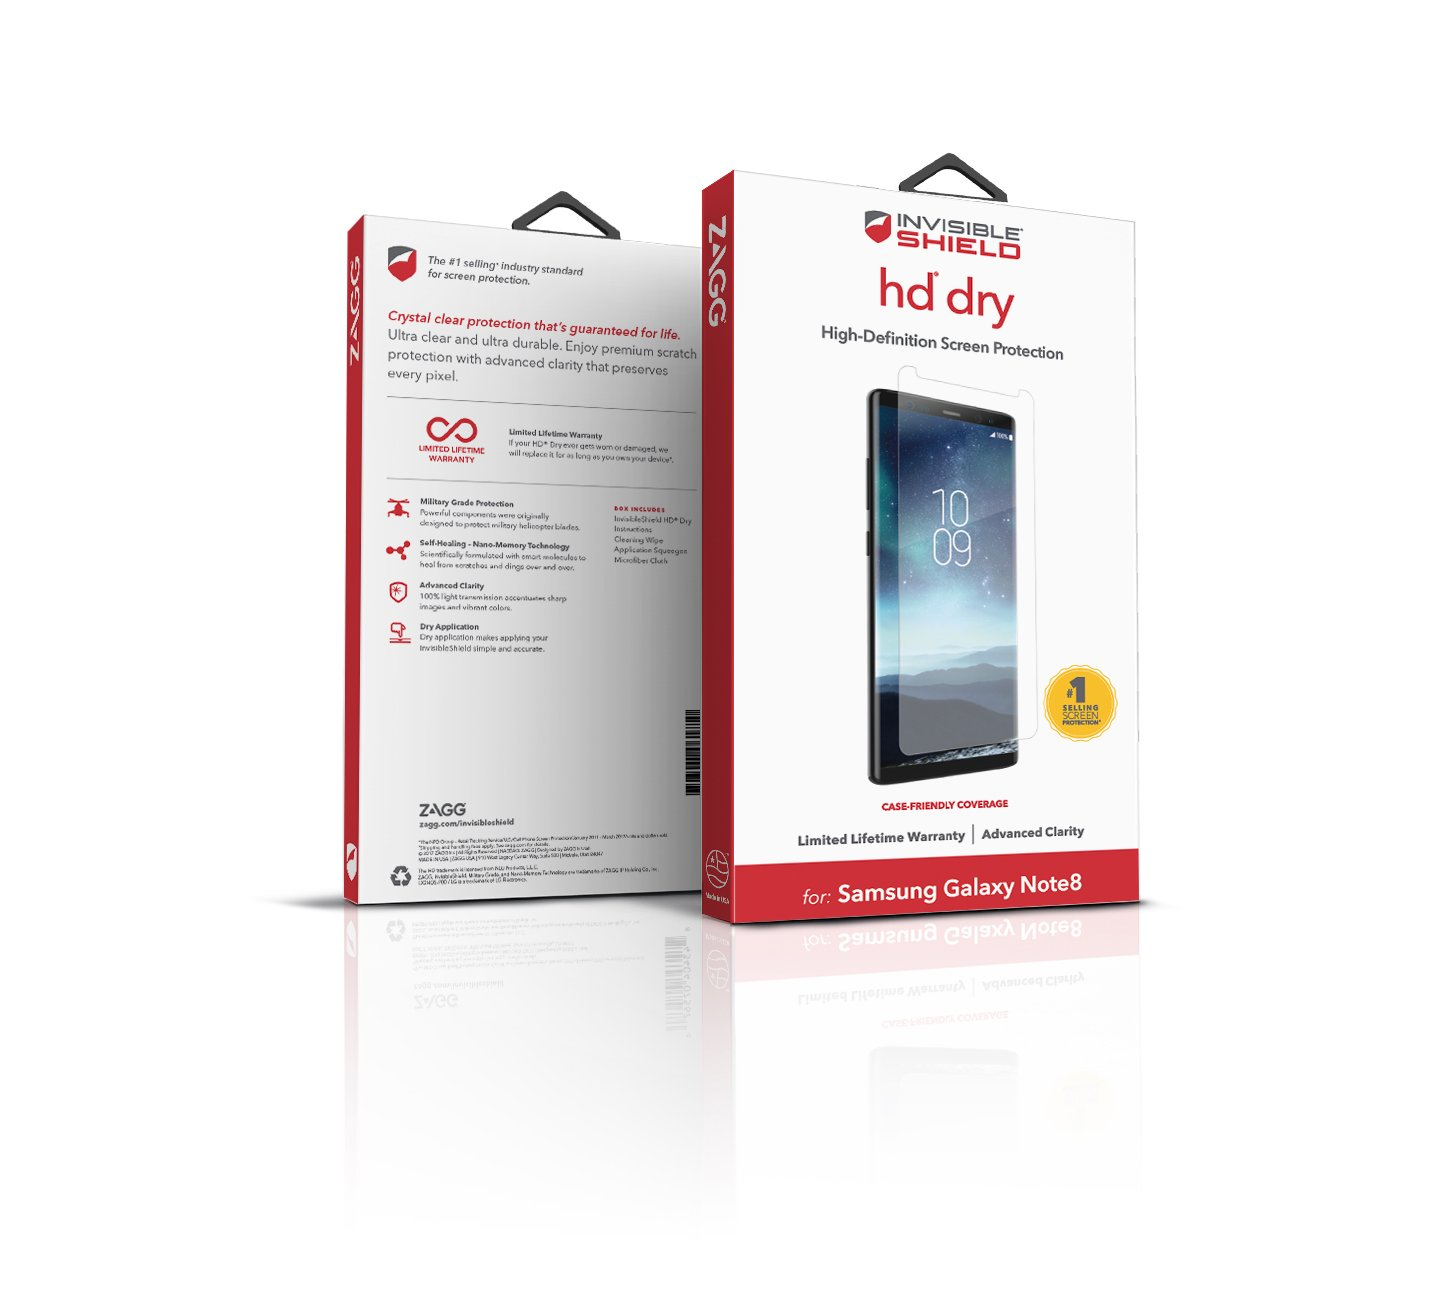 ZAGG – InvisibleShield HD Dry Film Screen Protector – Samsung Galaxy Note 8 Screen Protector – Advanced Clarity – Reduced Scratch Protection – 3X Shatter Proof